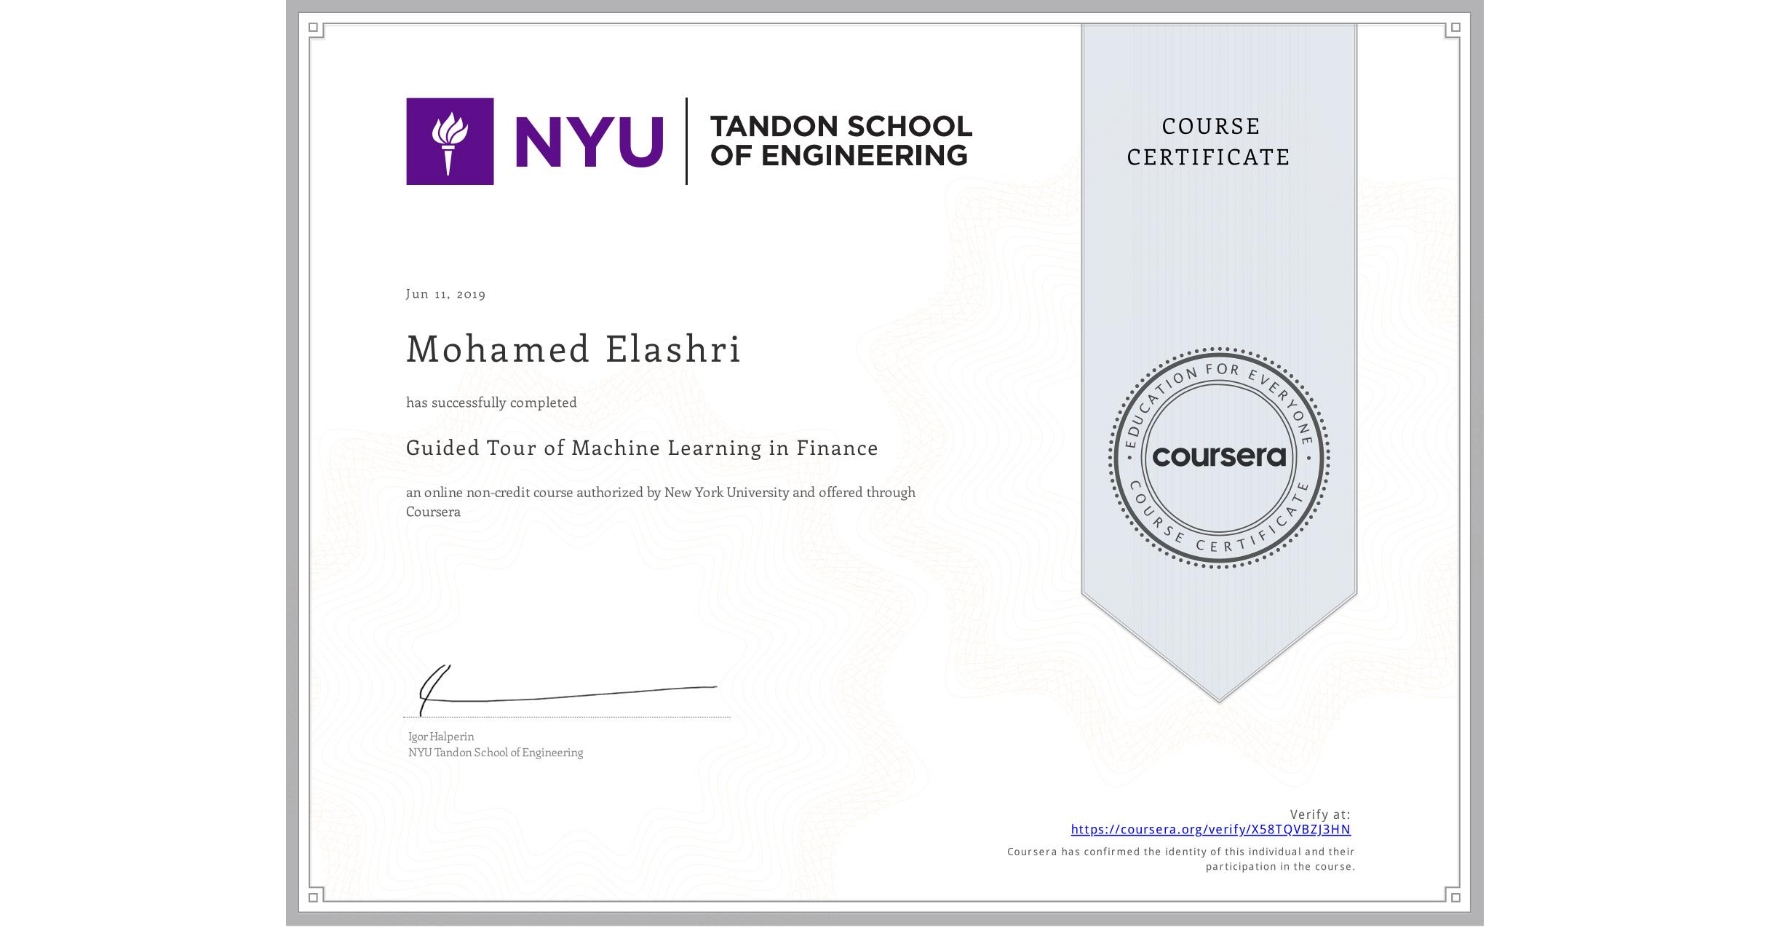 View certificate for Mohamed Elashri, Guided Tour of Machine Learning in Finance, an online non-credit course authorized by New York University and offered through Coursera